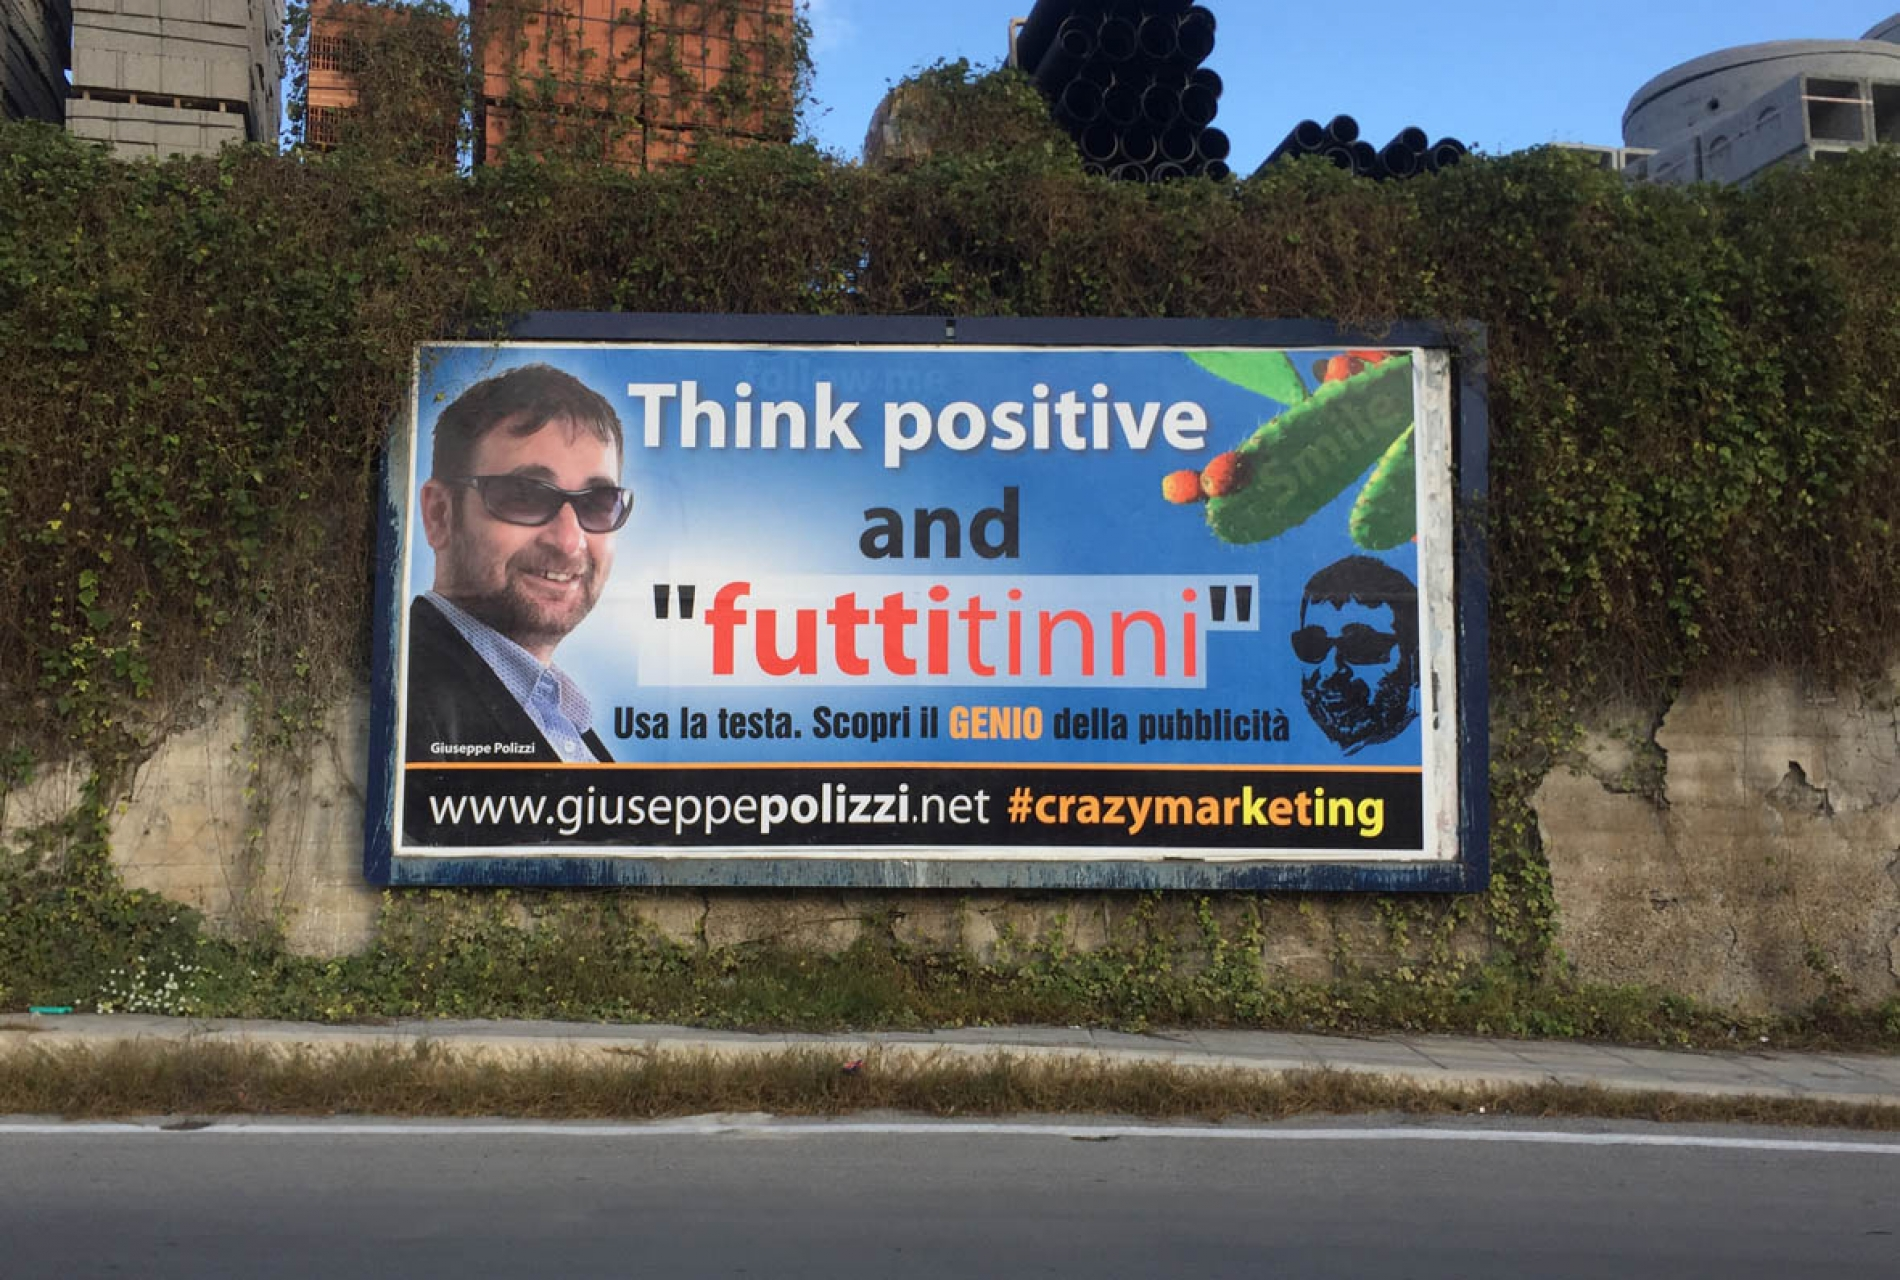 think positive and futtitinni